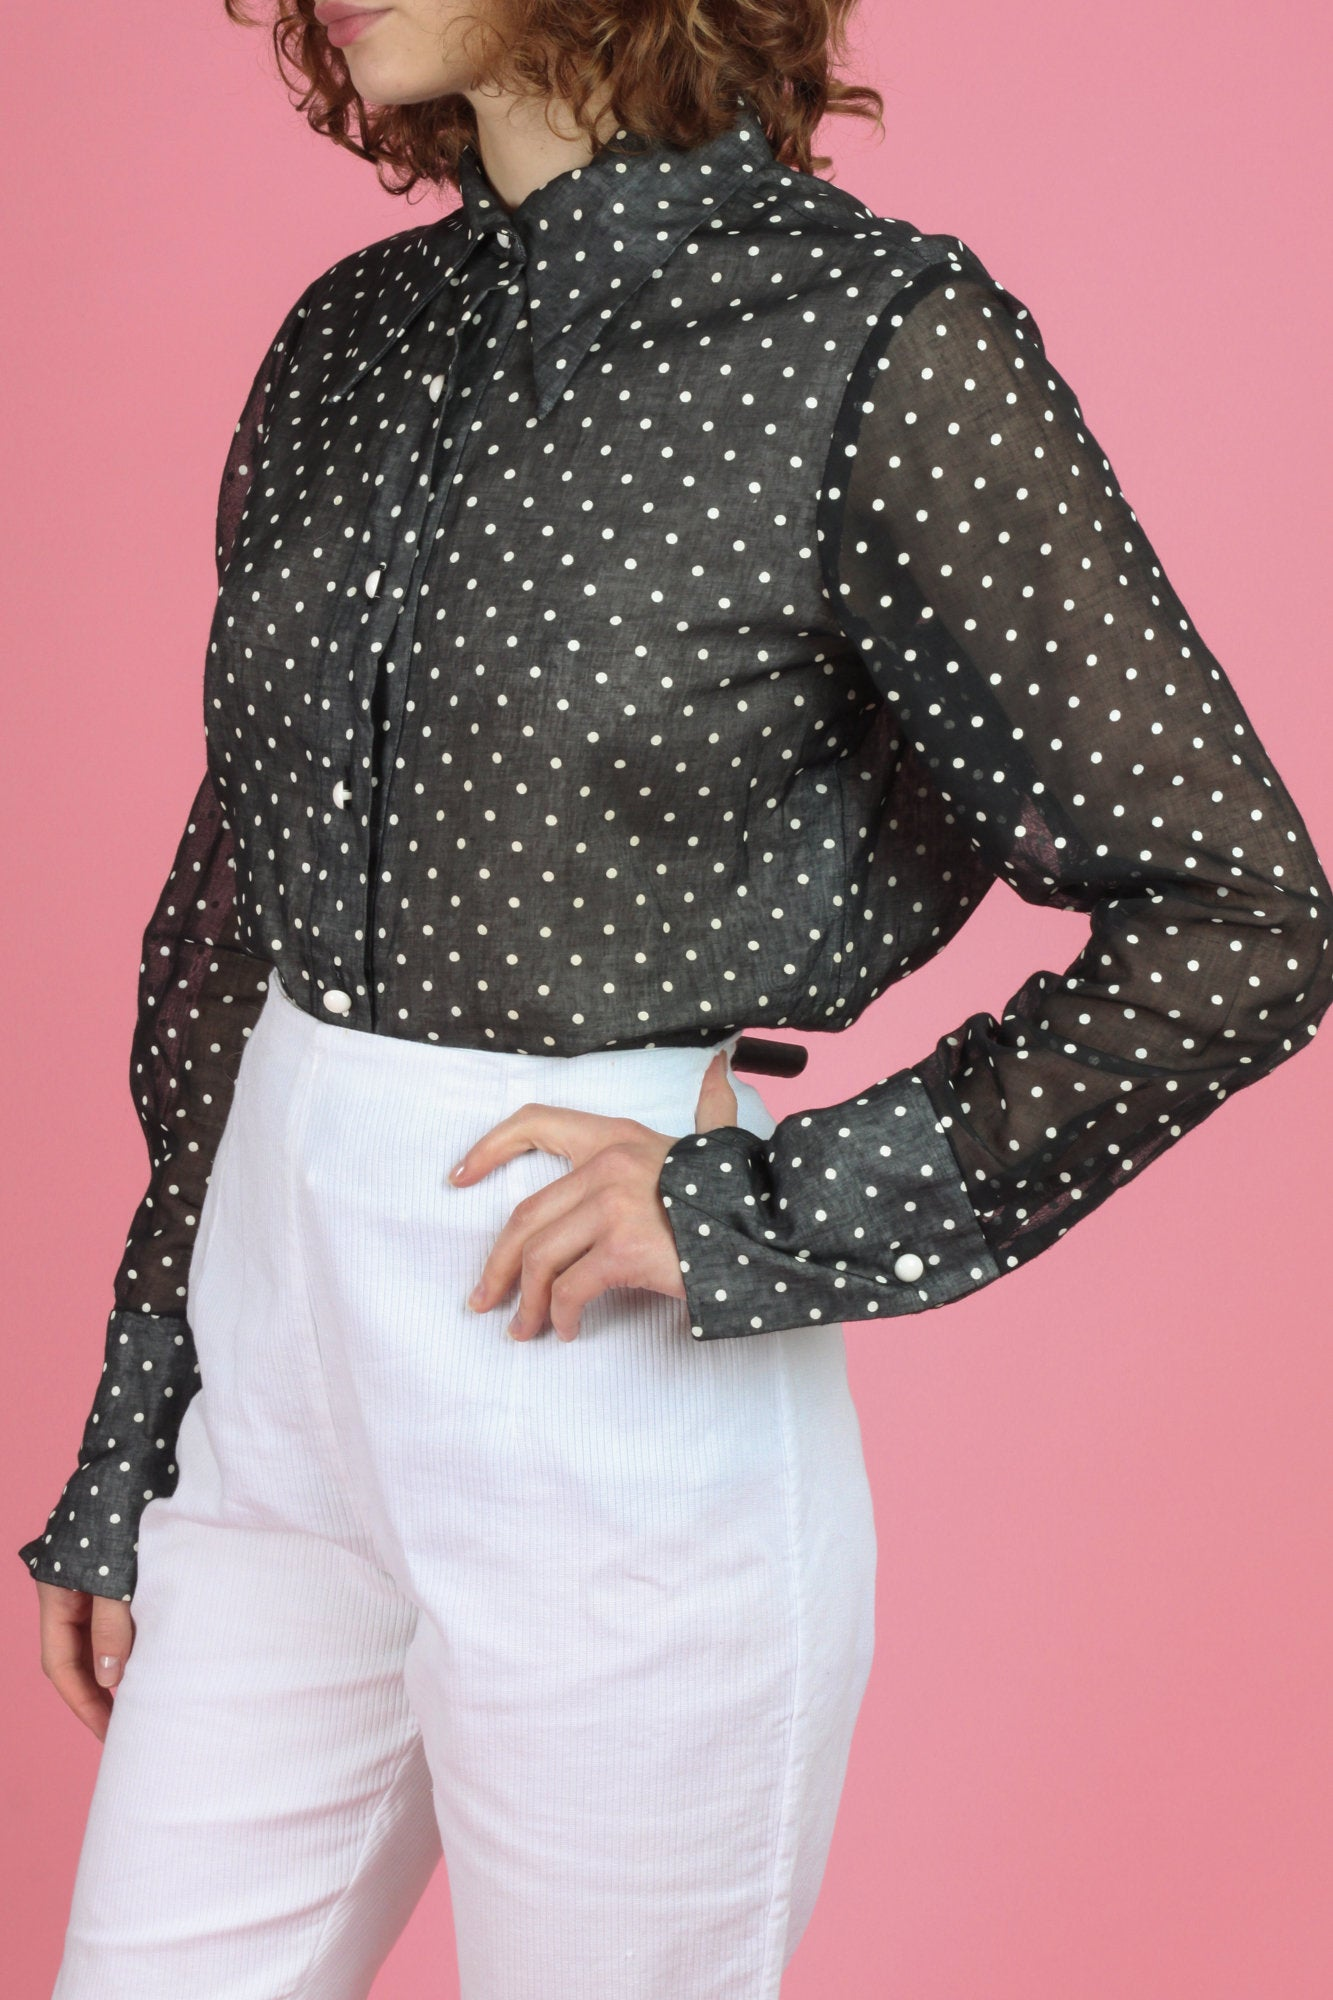 70s Black & White Polka Dot Cufflink Top - Large